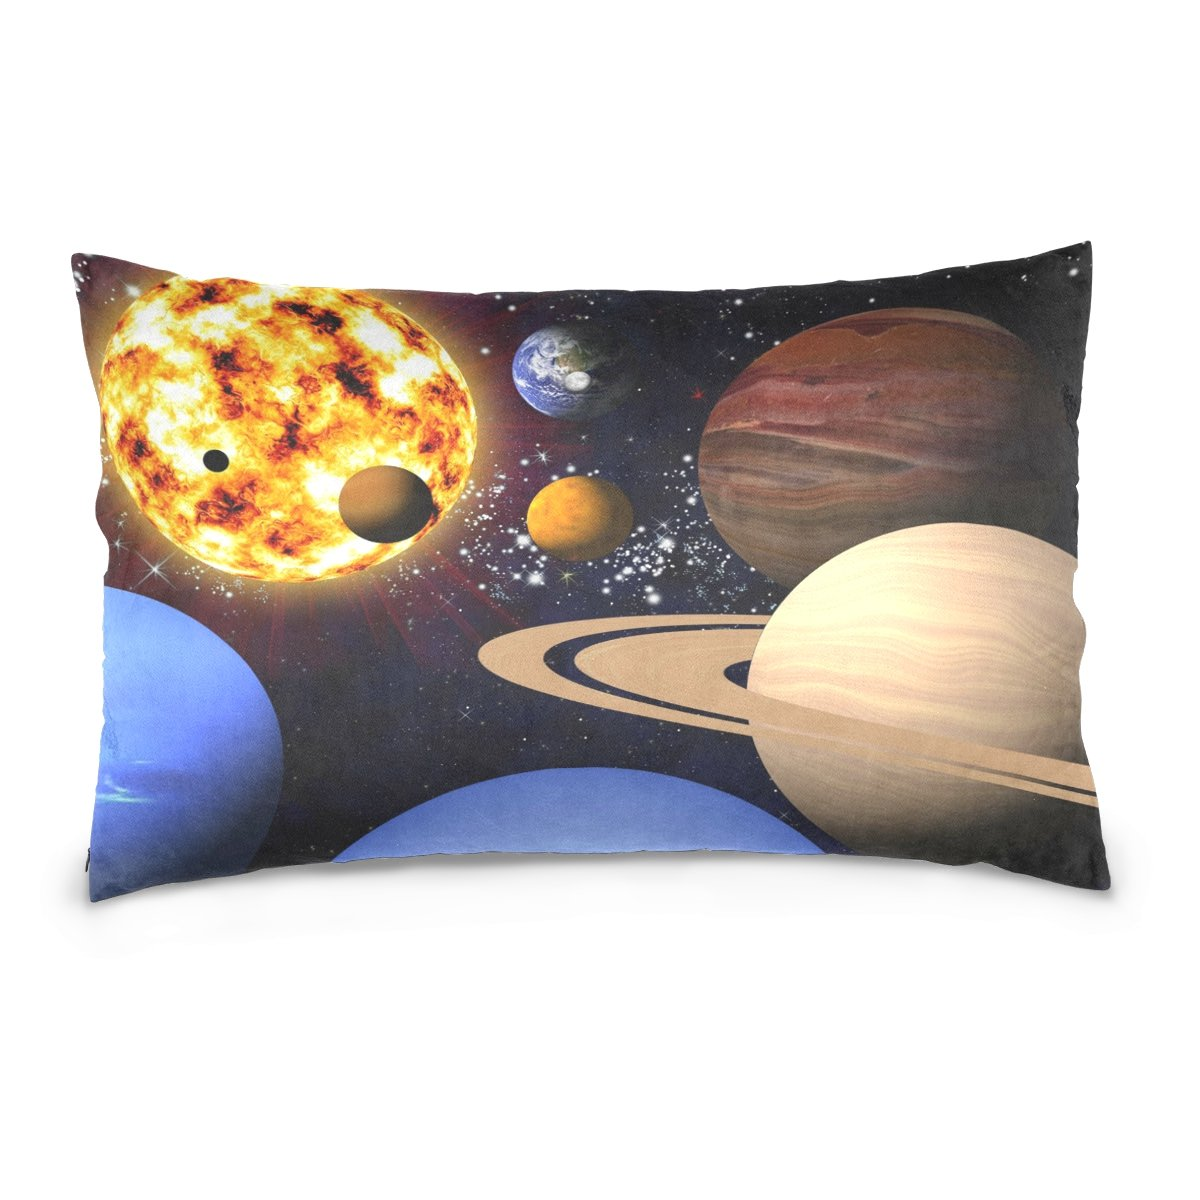 ALAZA Outer Space Solar System Cotton Lint Pillow Case,Double-sided Printing Home Decor Pillowcase Size 16''x24'',for Bedroom Women Girl Boy